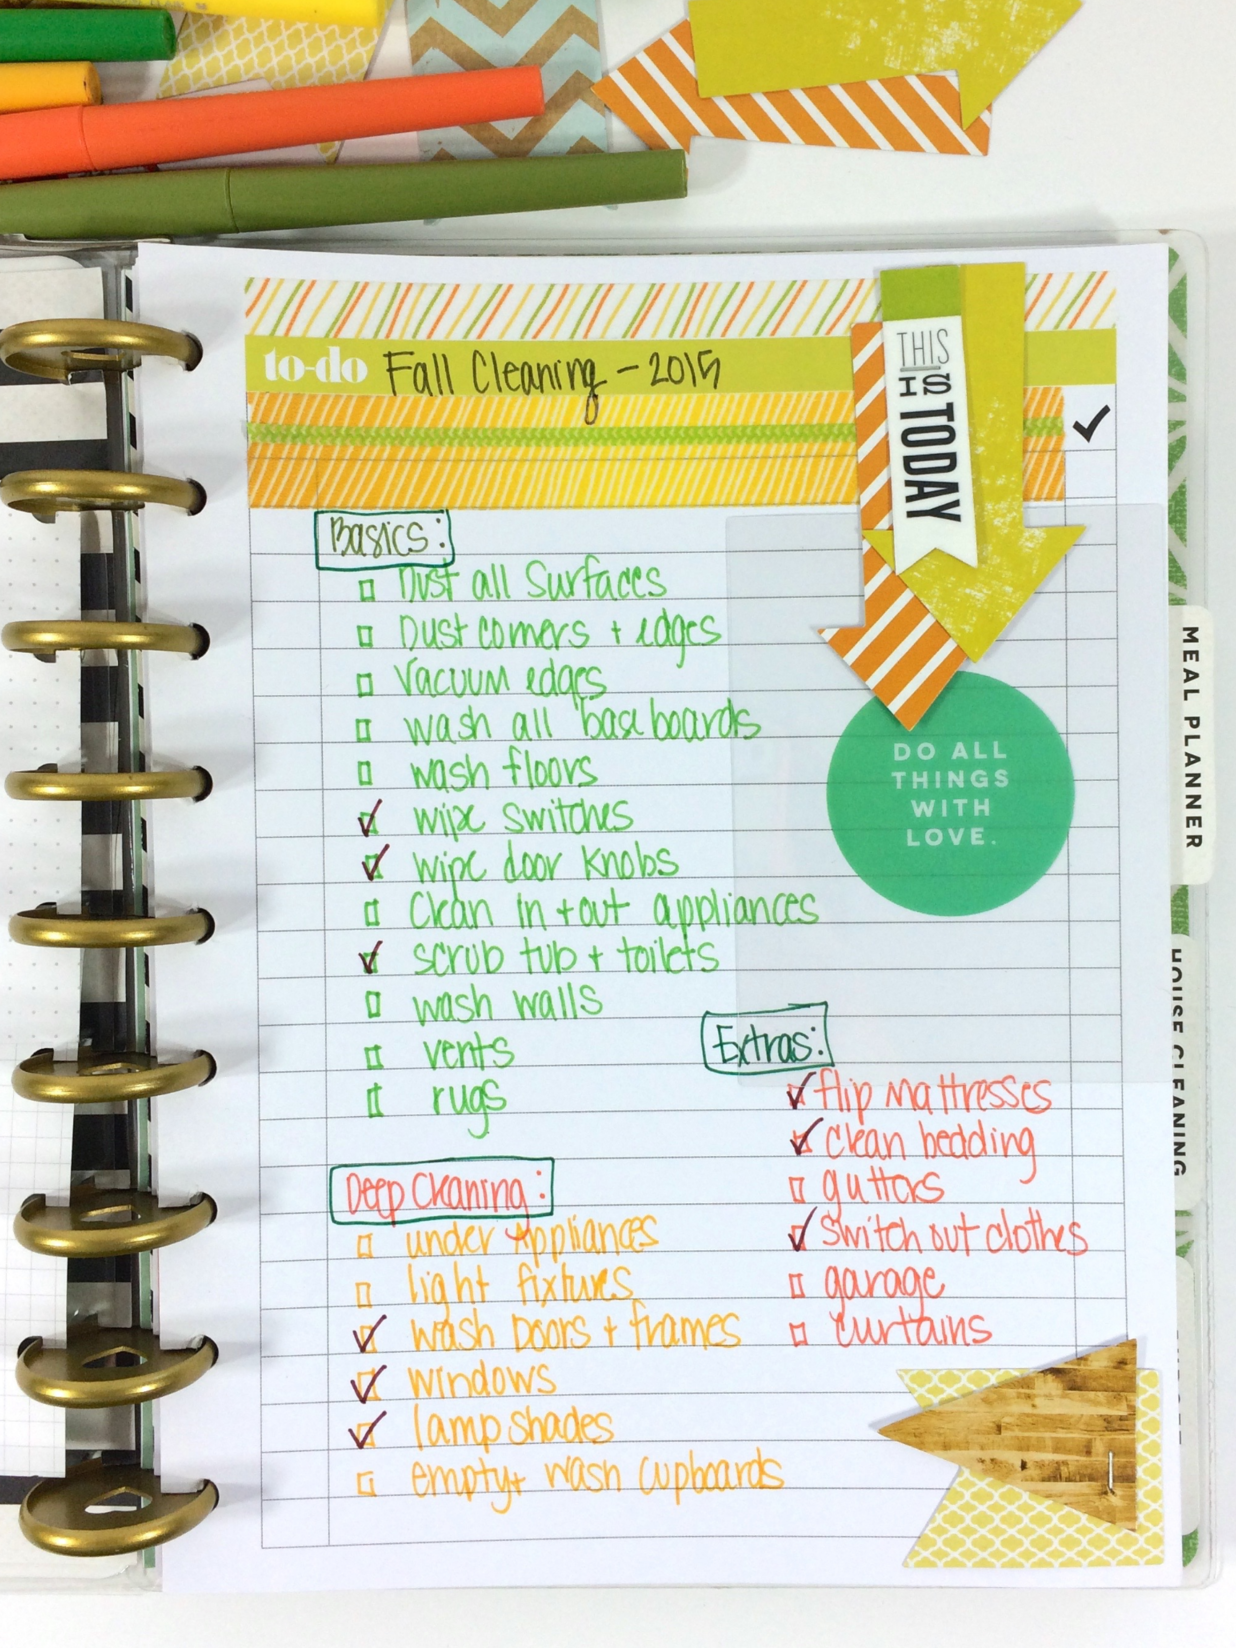 'Fall Cleaning' list using 'To Do'page